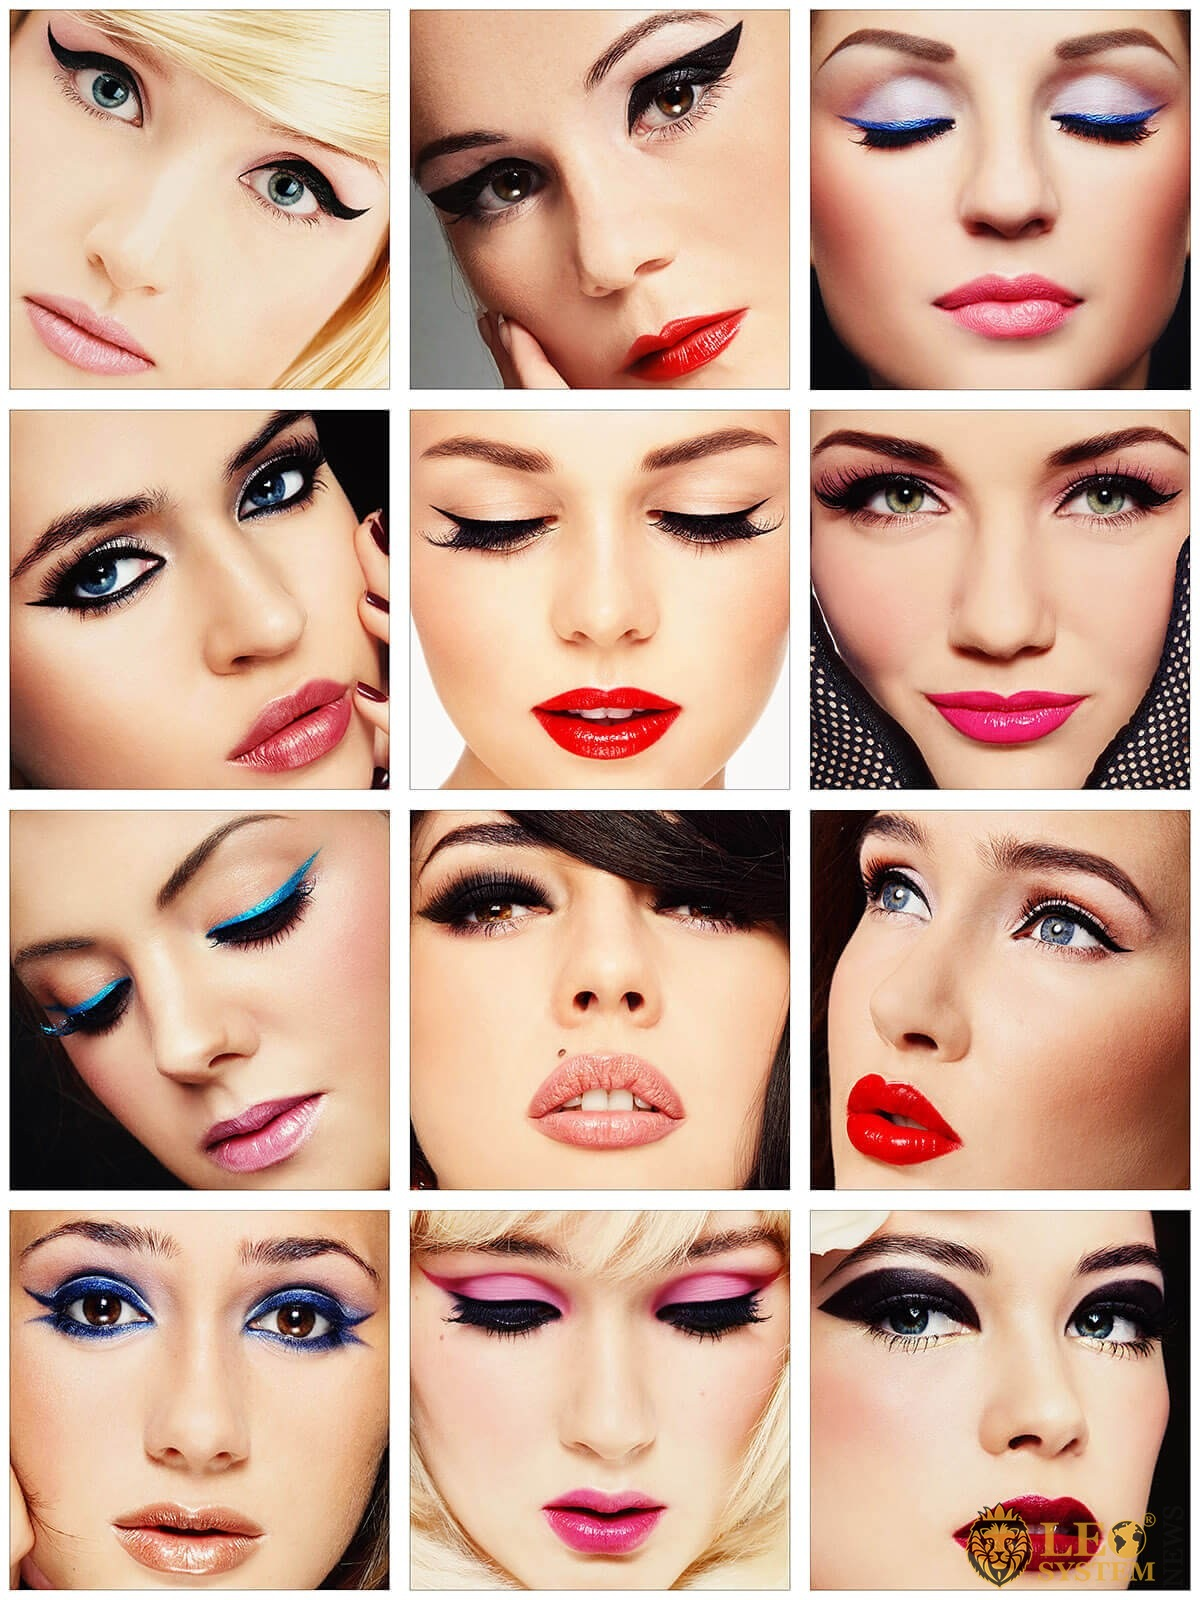 Women with different makeup options